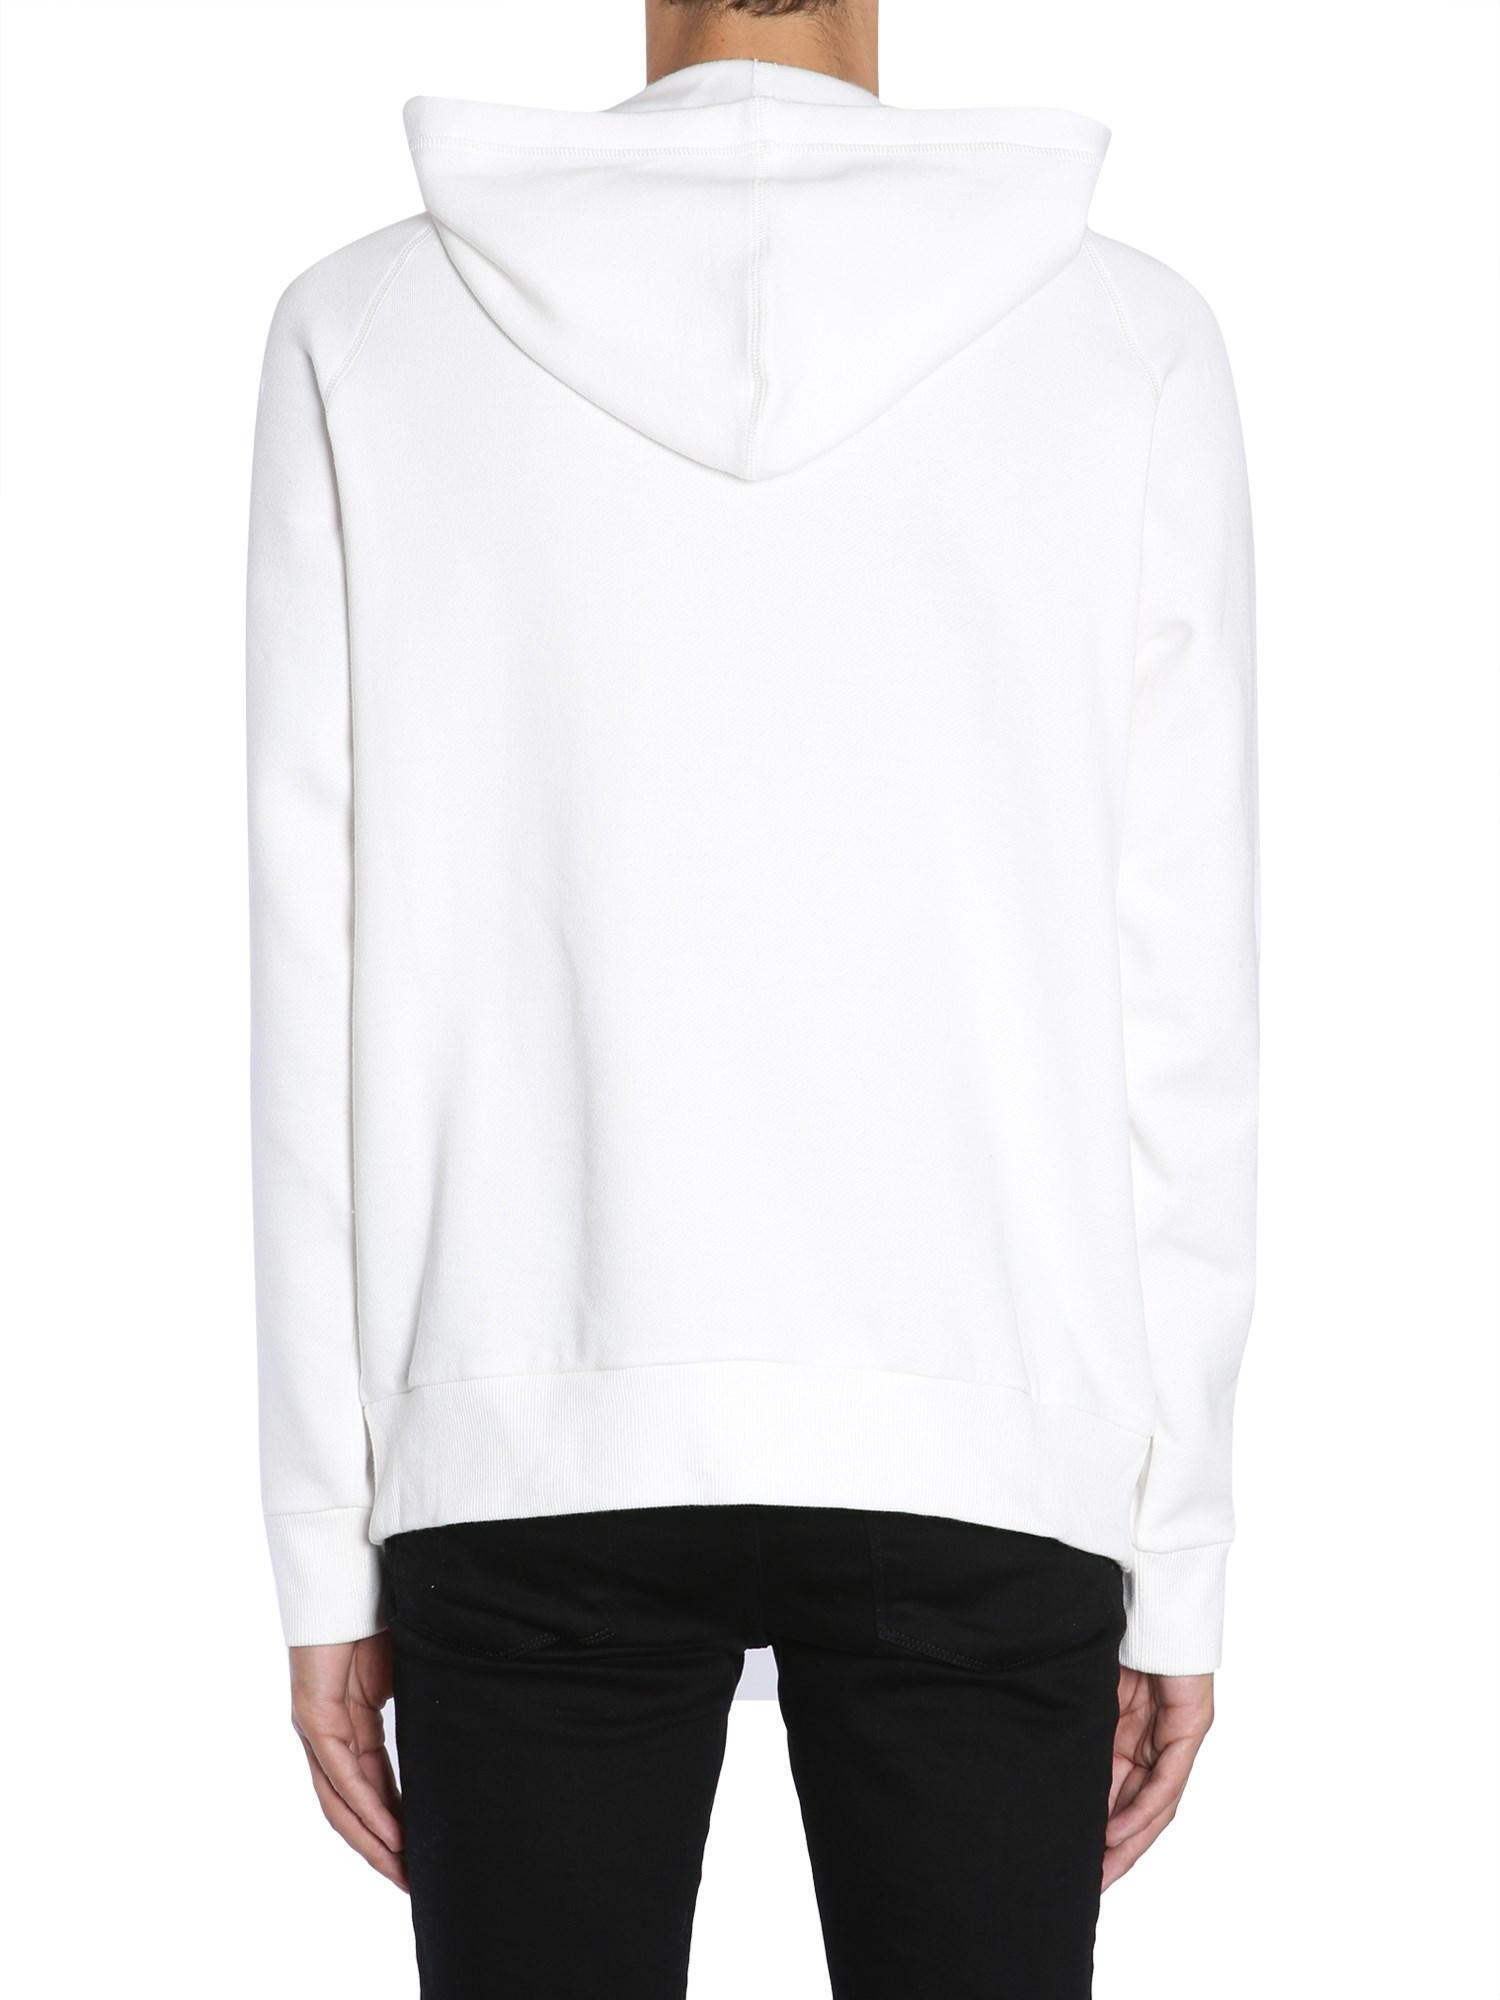 Lanvin Cotton Useful Pain Print Hoodie in White for Men - Save 36%